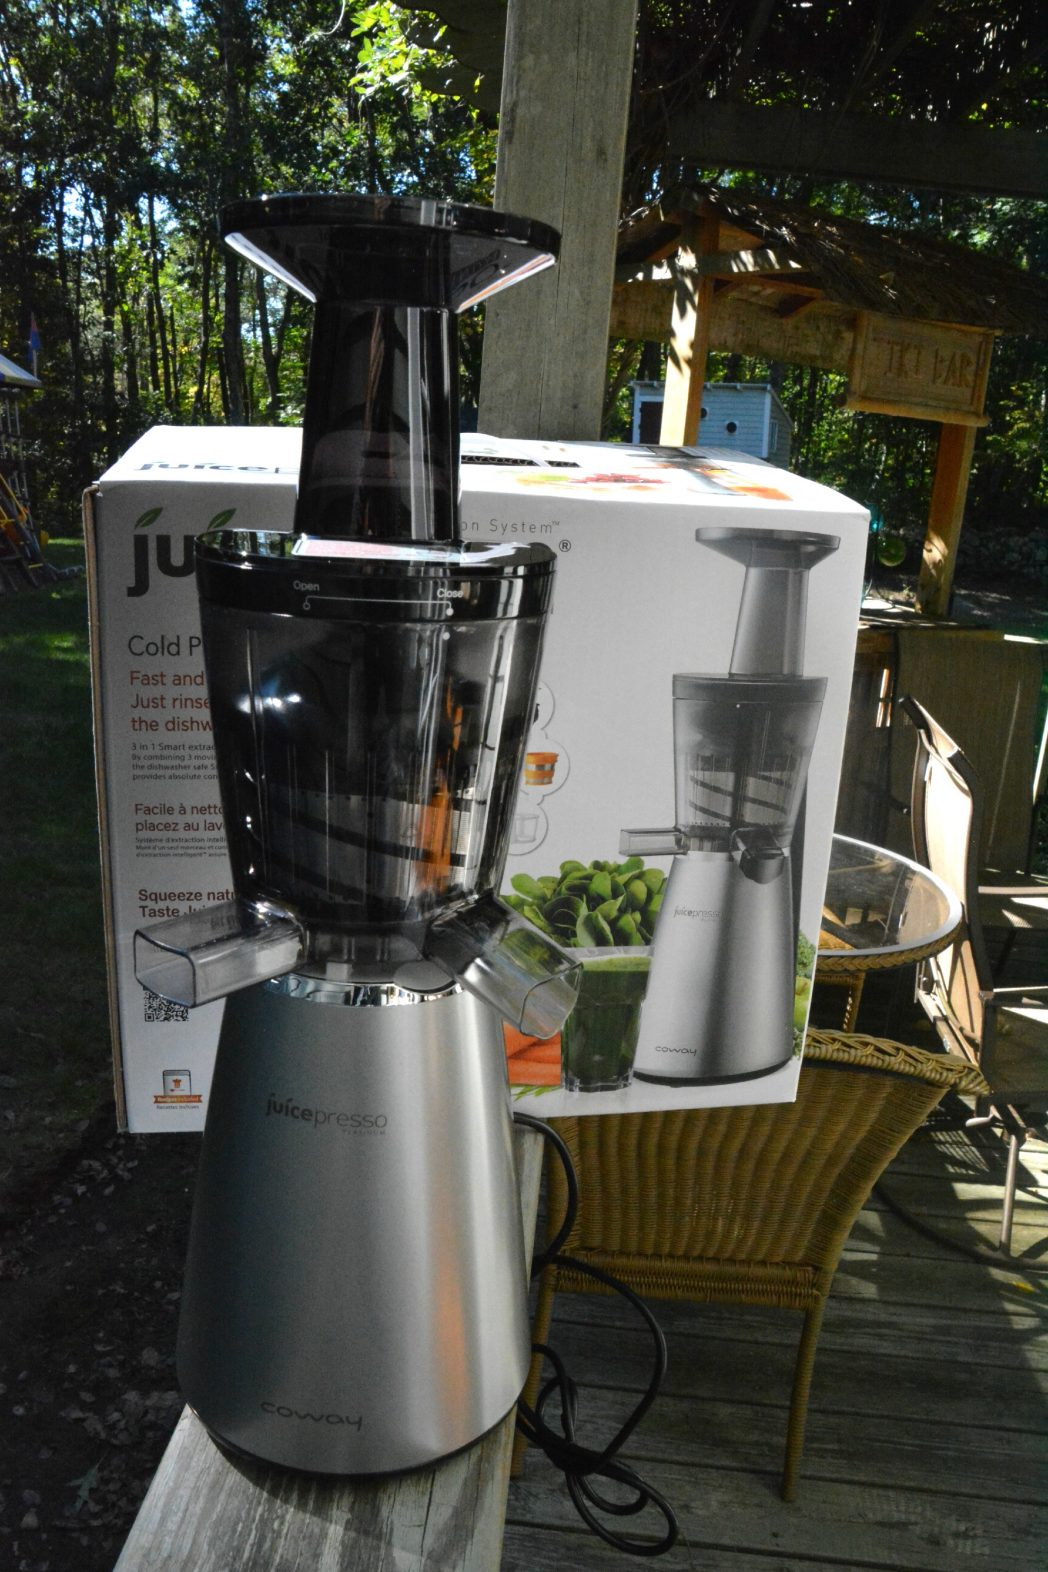 Slow Juicer Juicepresso : Juicing with the Juicepresso Slow Juicer- An AMAZING Juicer! - The Mommyhood Chronicles